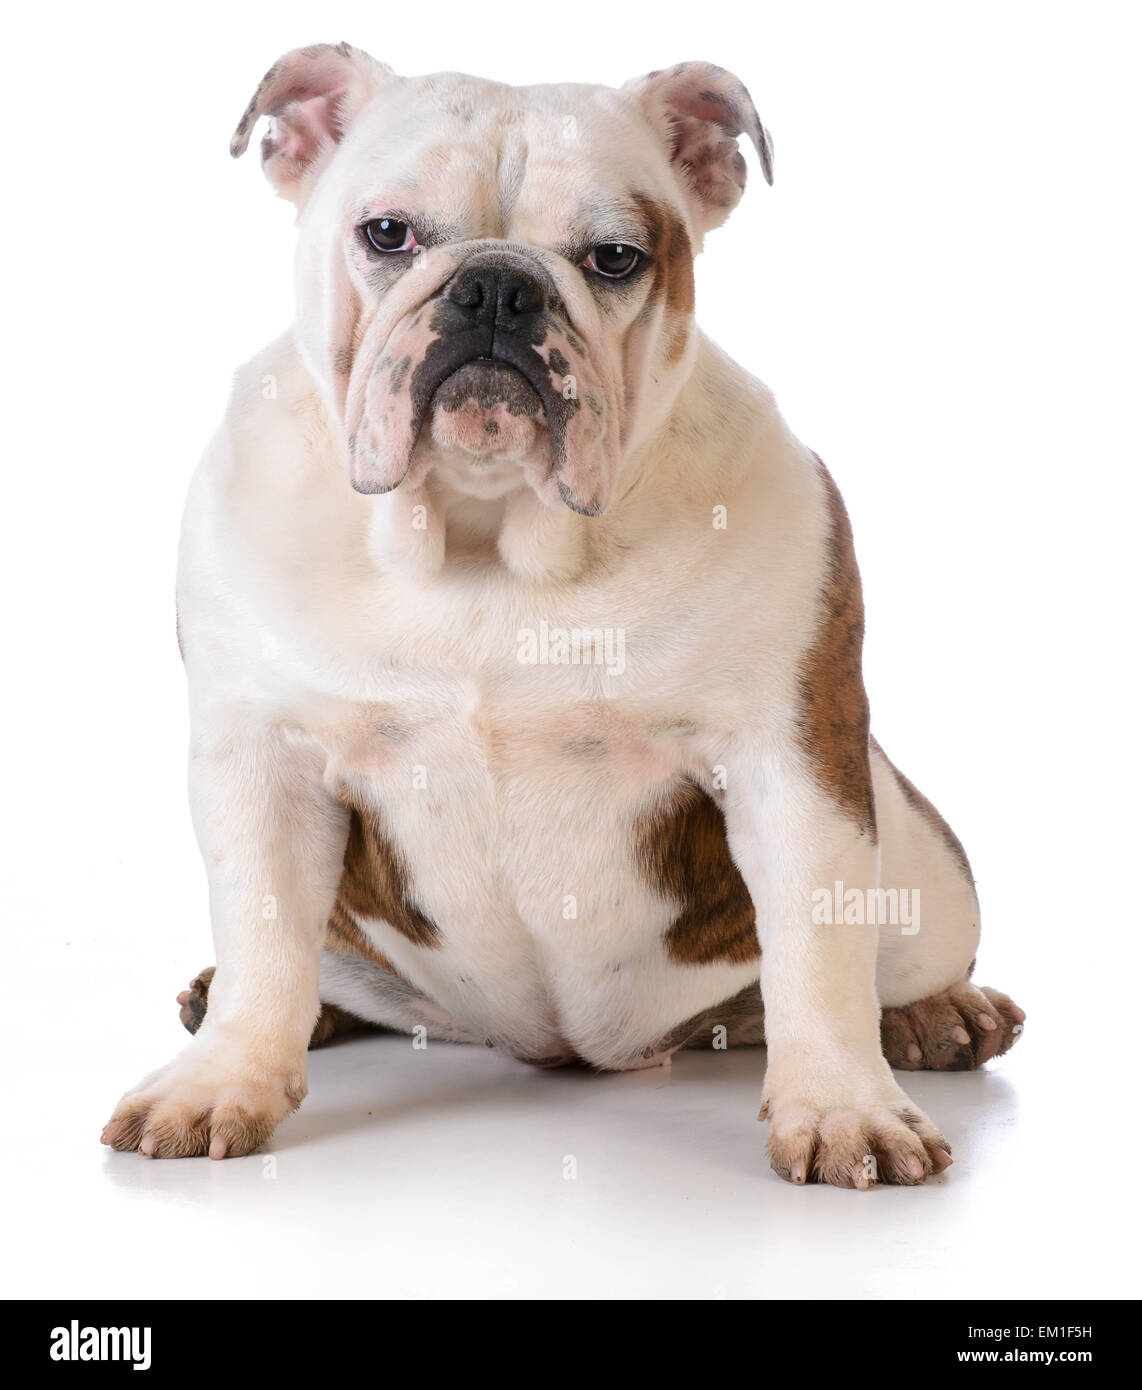 dog with muddy feet - bulldog sitting on white background - Stock Image